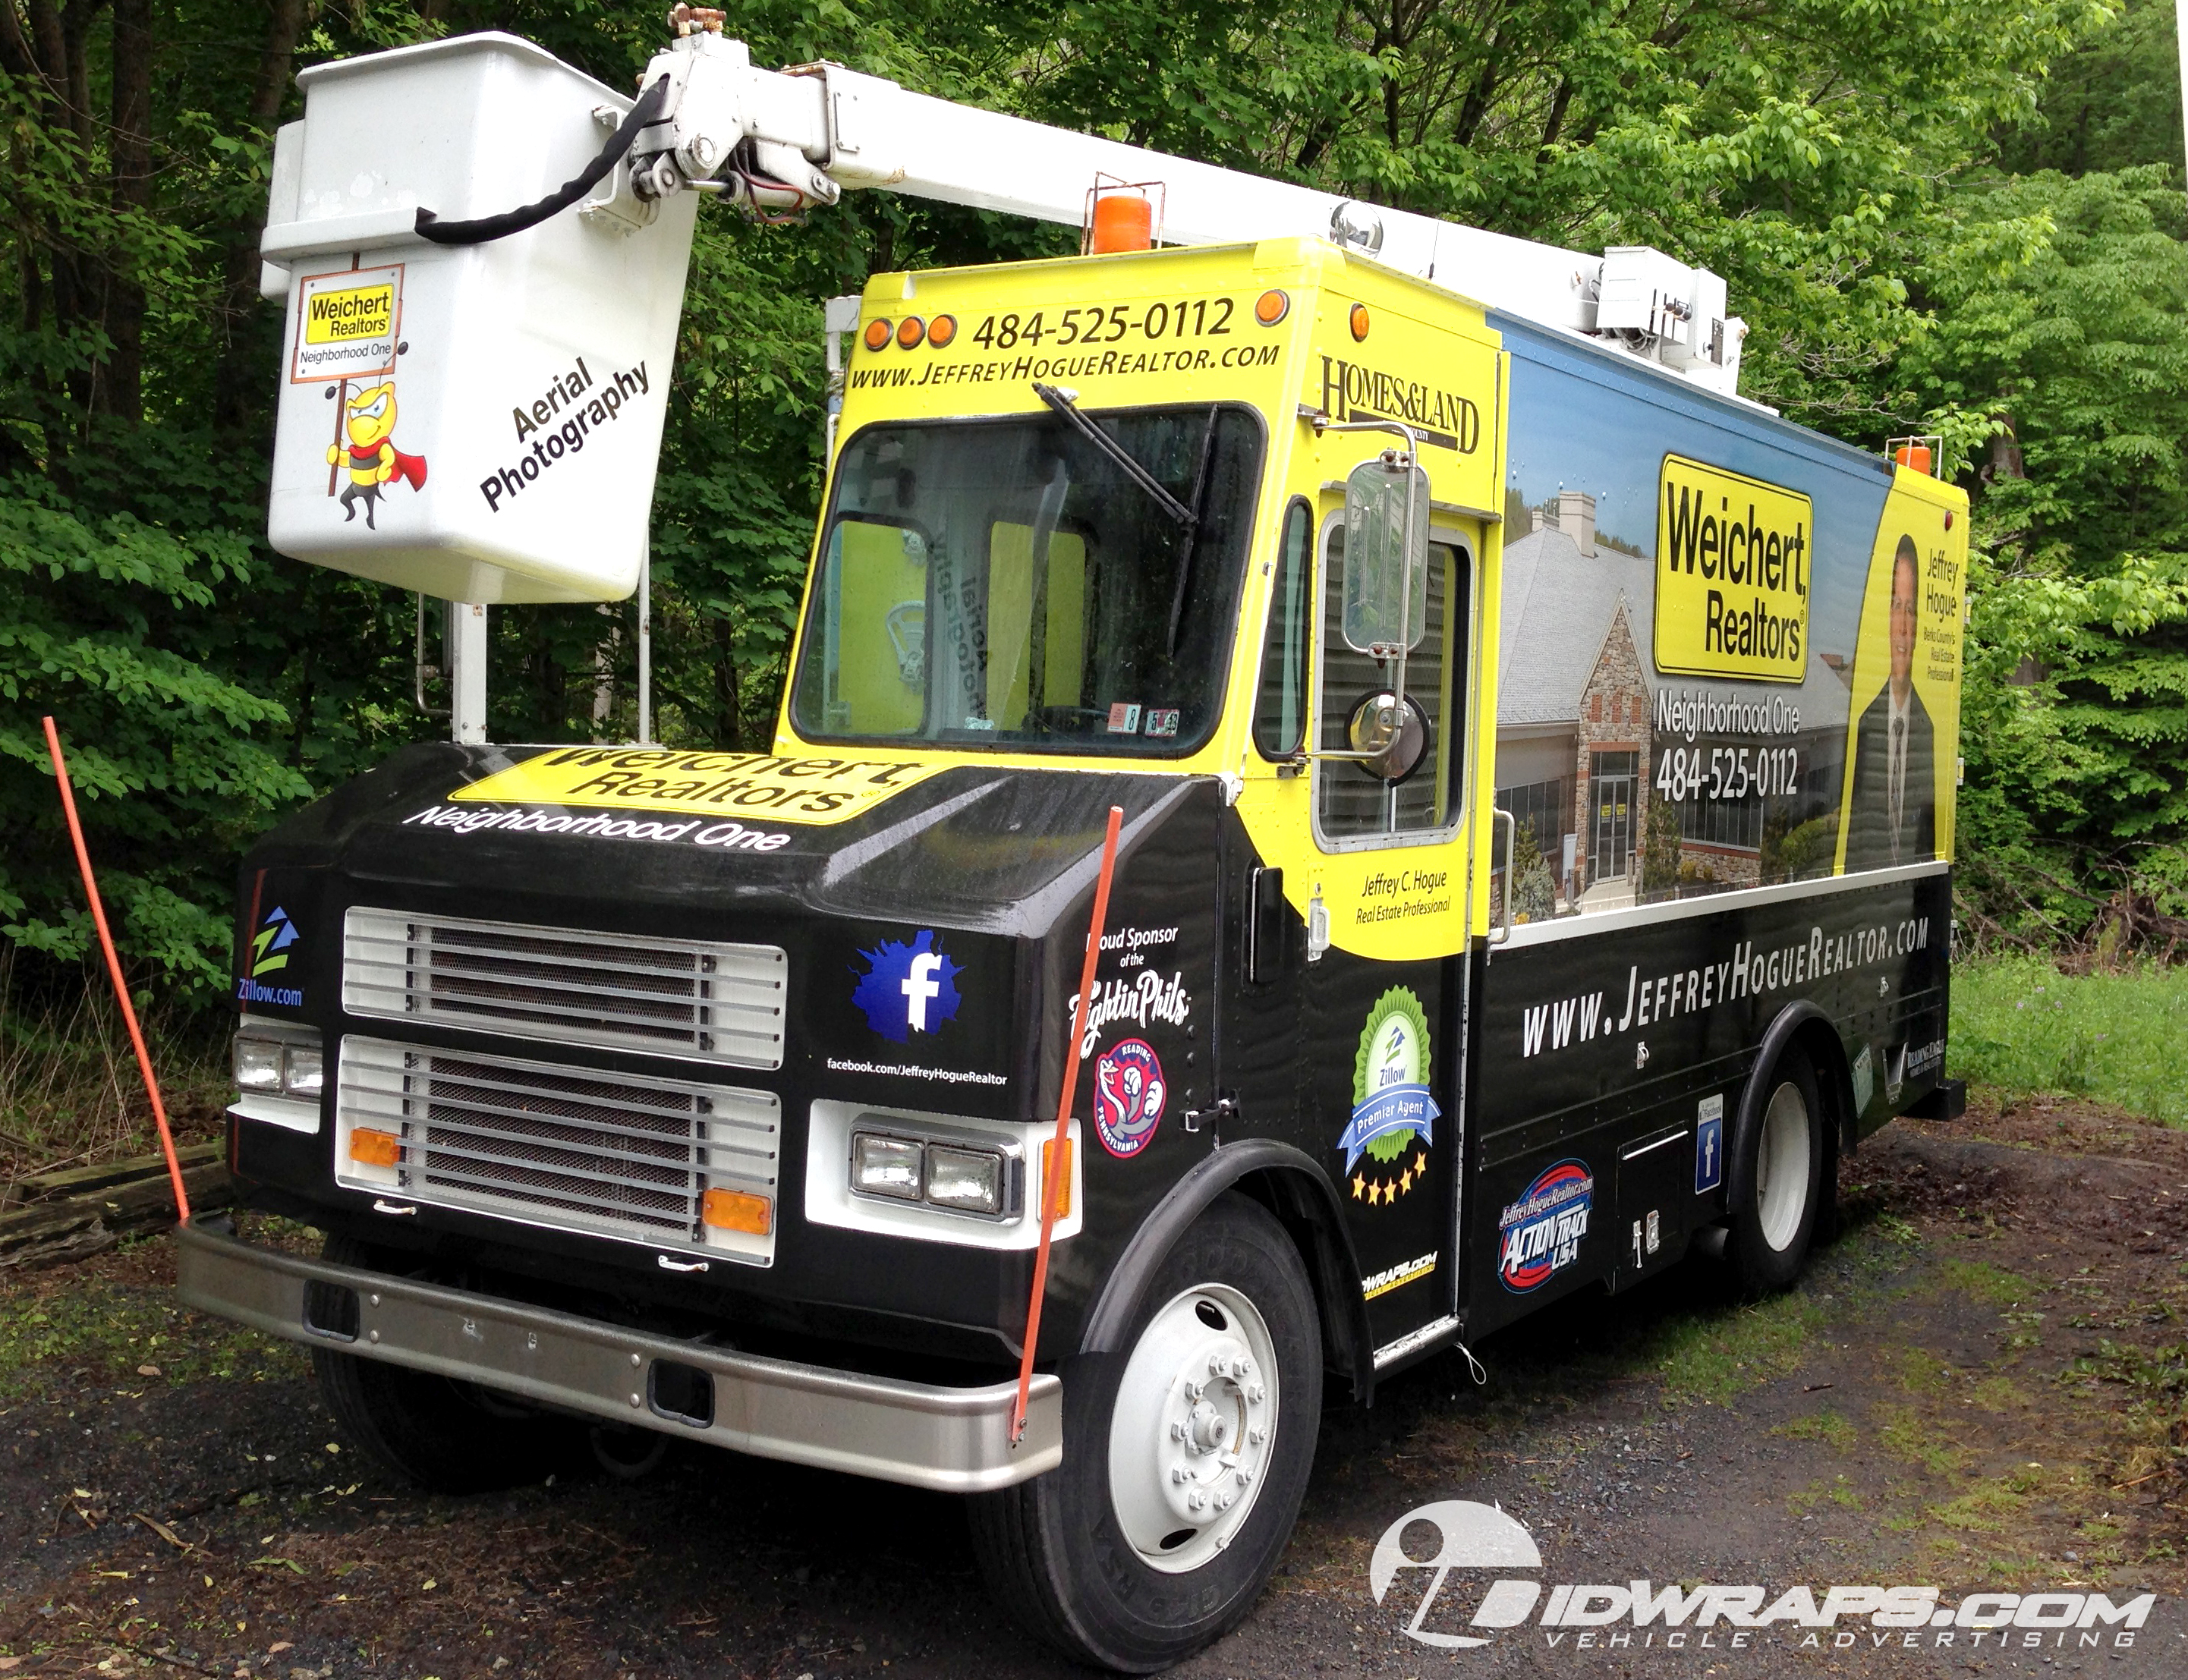 3m Bucket Truck Wrap For Realtor In Wyomissing Pa Idwraps